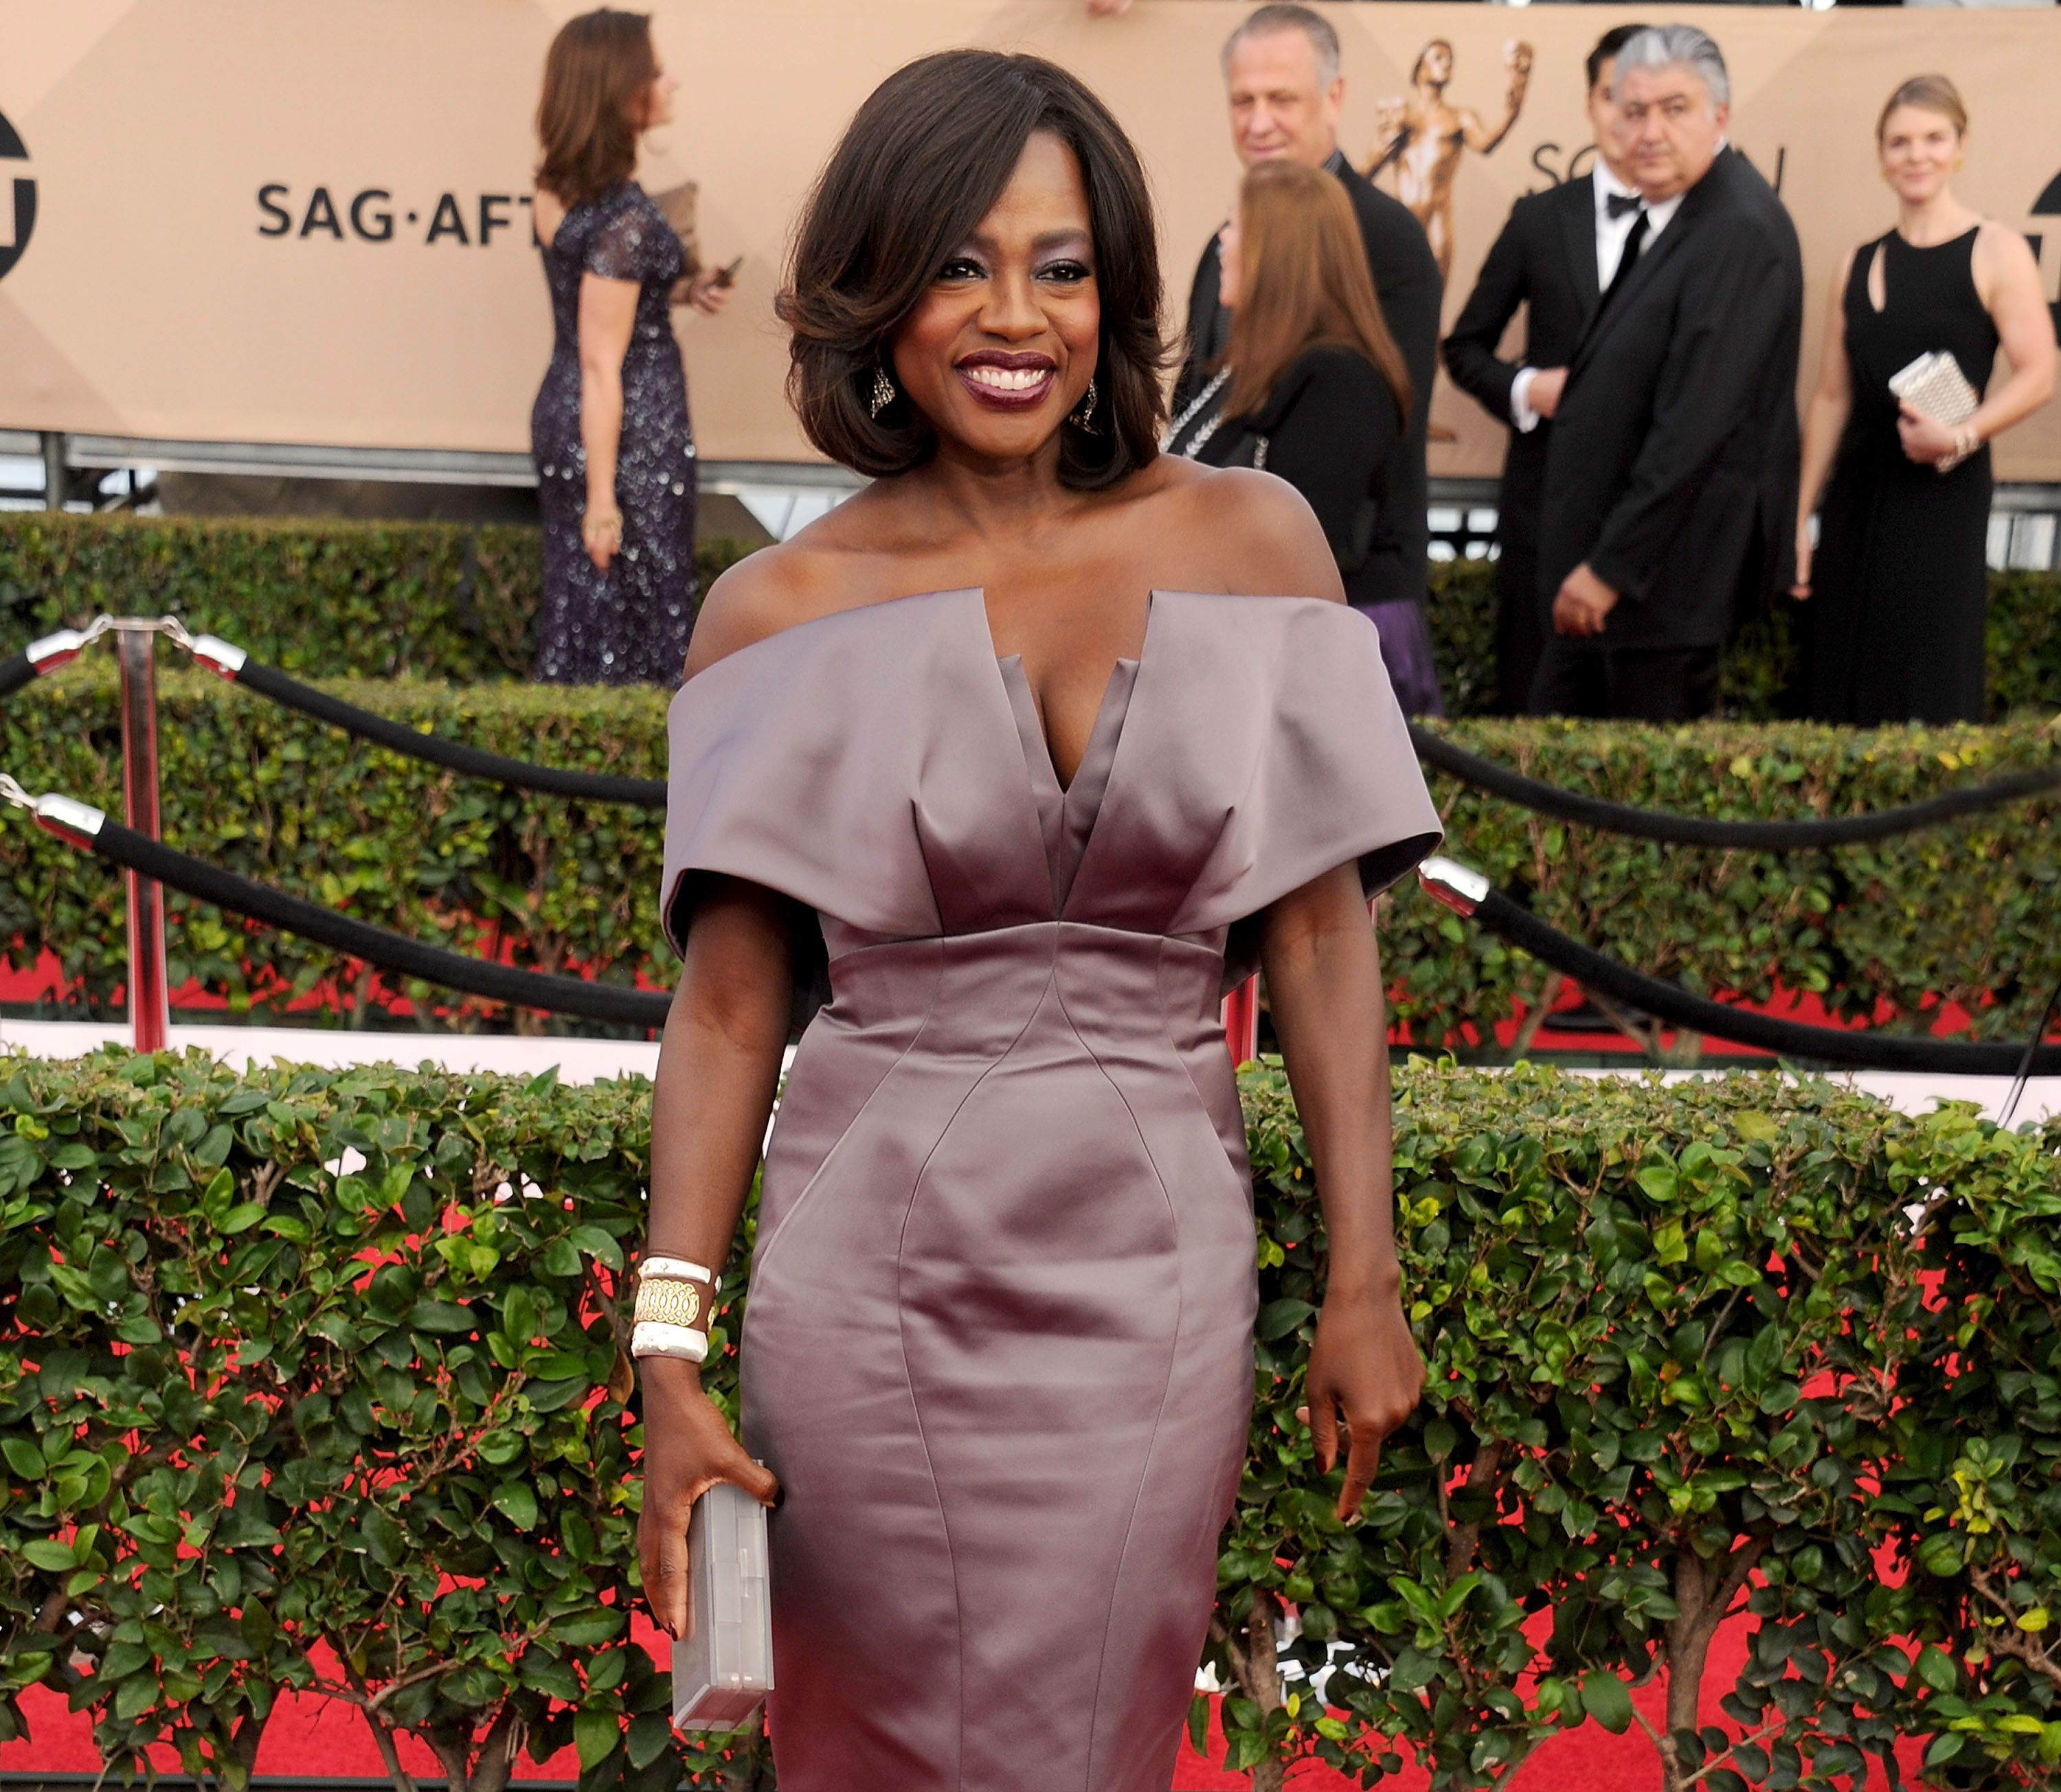 Who wore what this weekend: 10 best looks from the SAG Awards